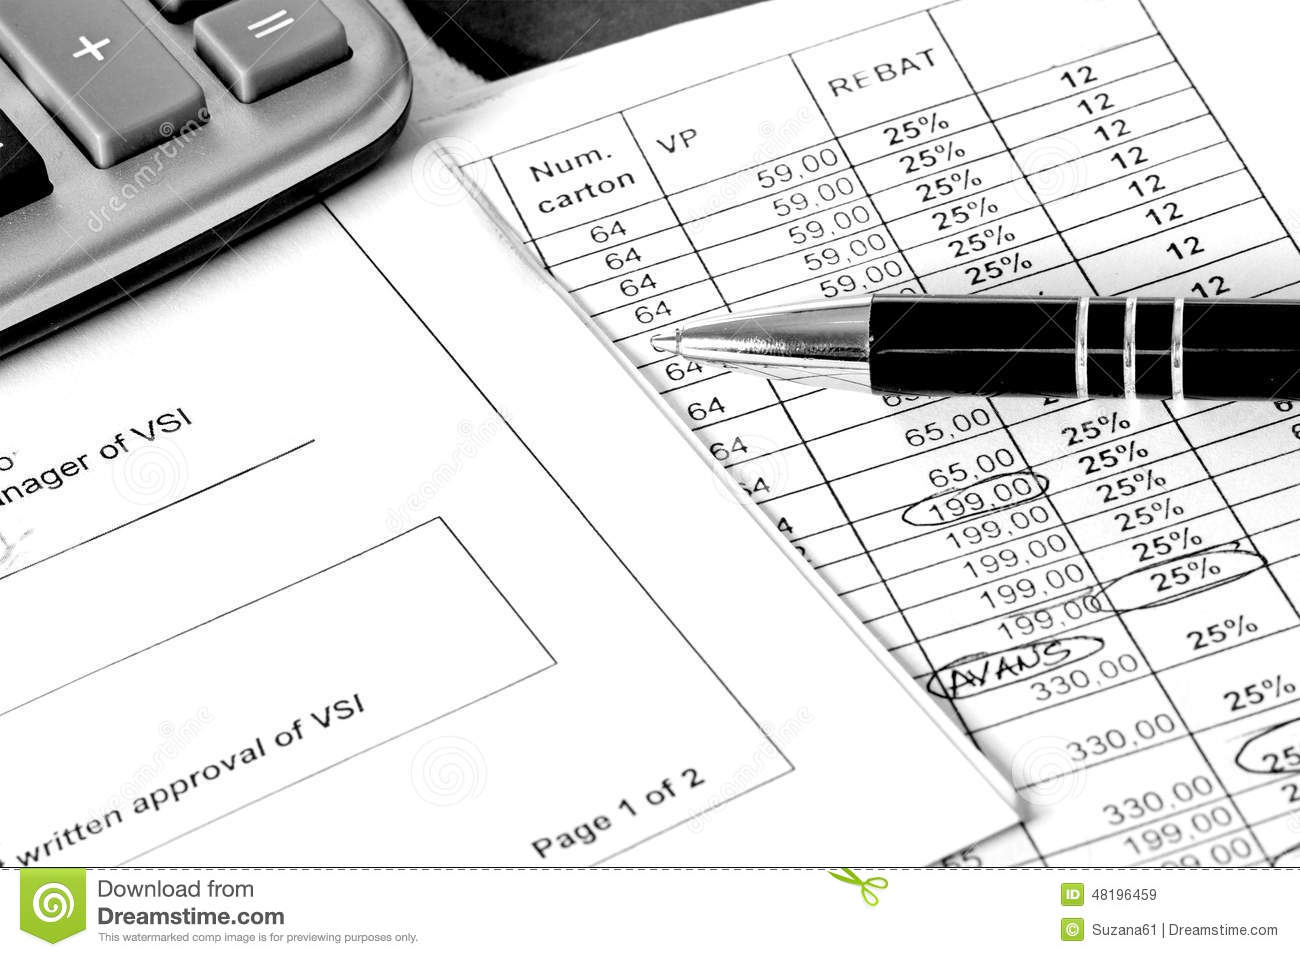 Calculate your retirement savings and more